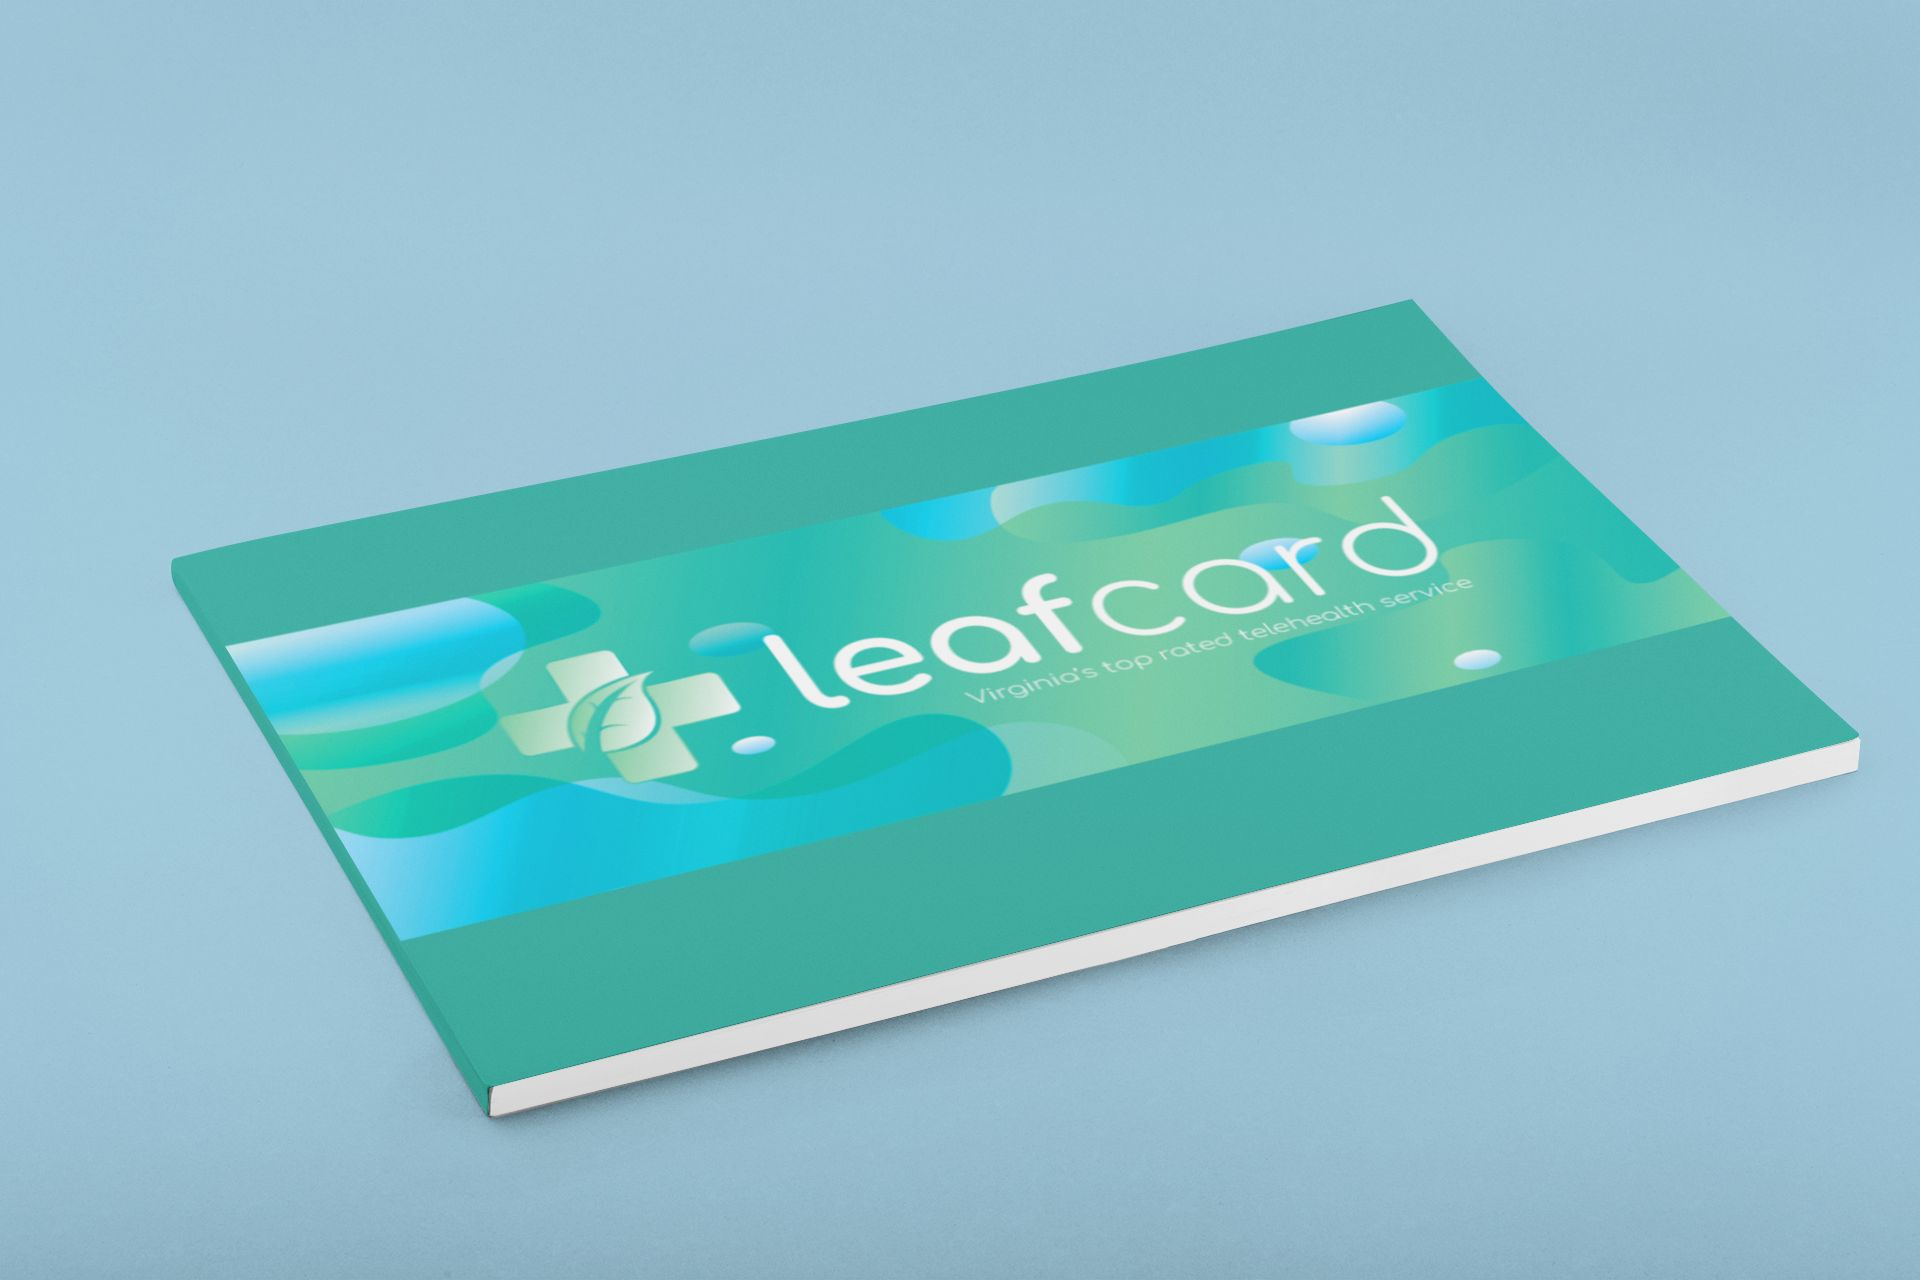 /how-our-leafcard-cannatech-platform-helps-patients-and-provides-educational-materials-082234jq feature image